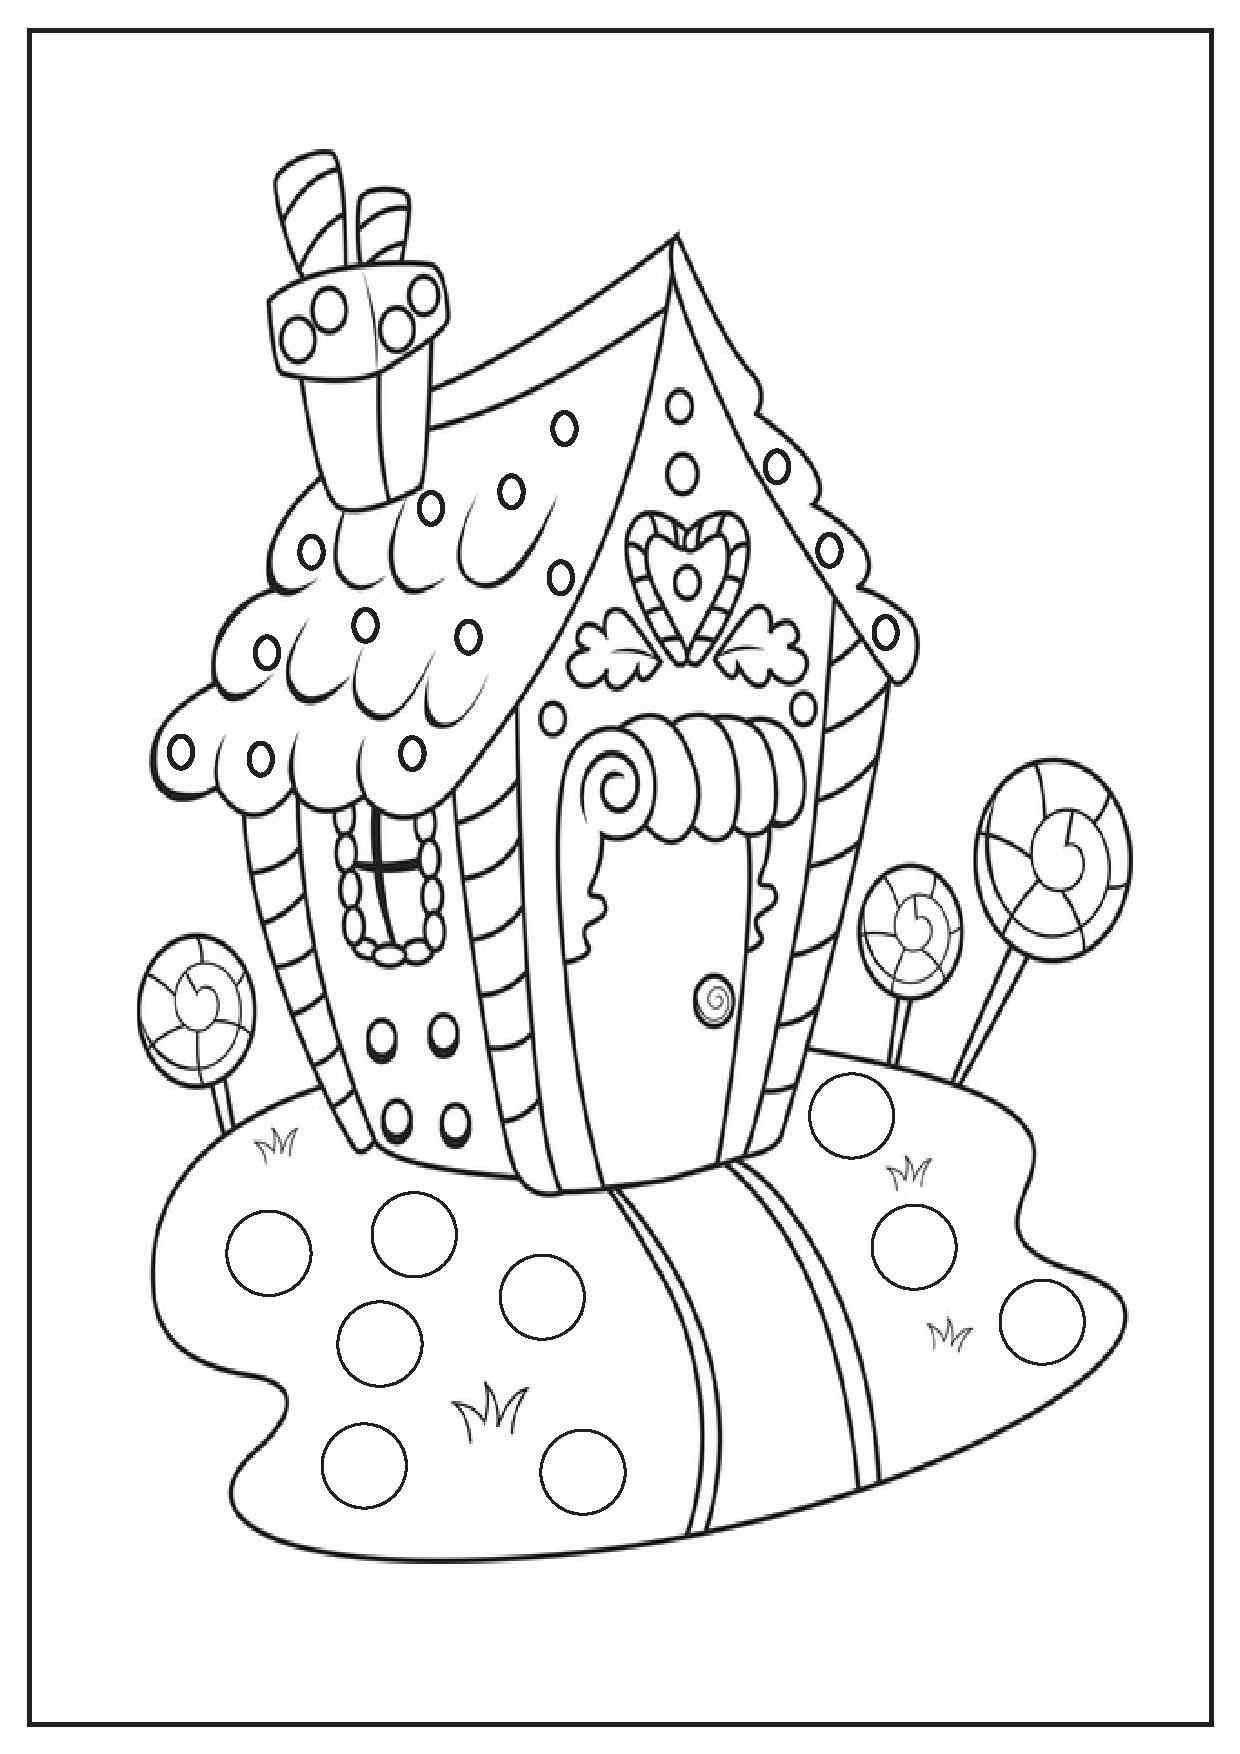 Best Of Christmas Coloring Pages With Kindergarten For Teachers